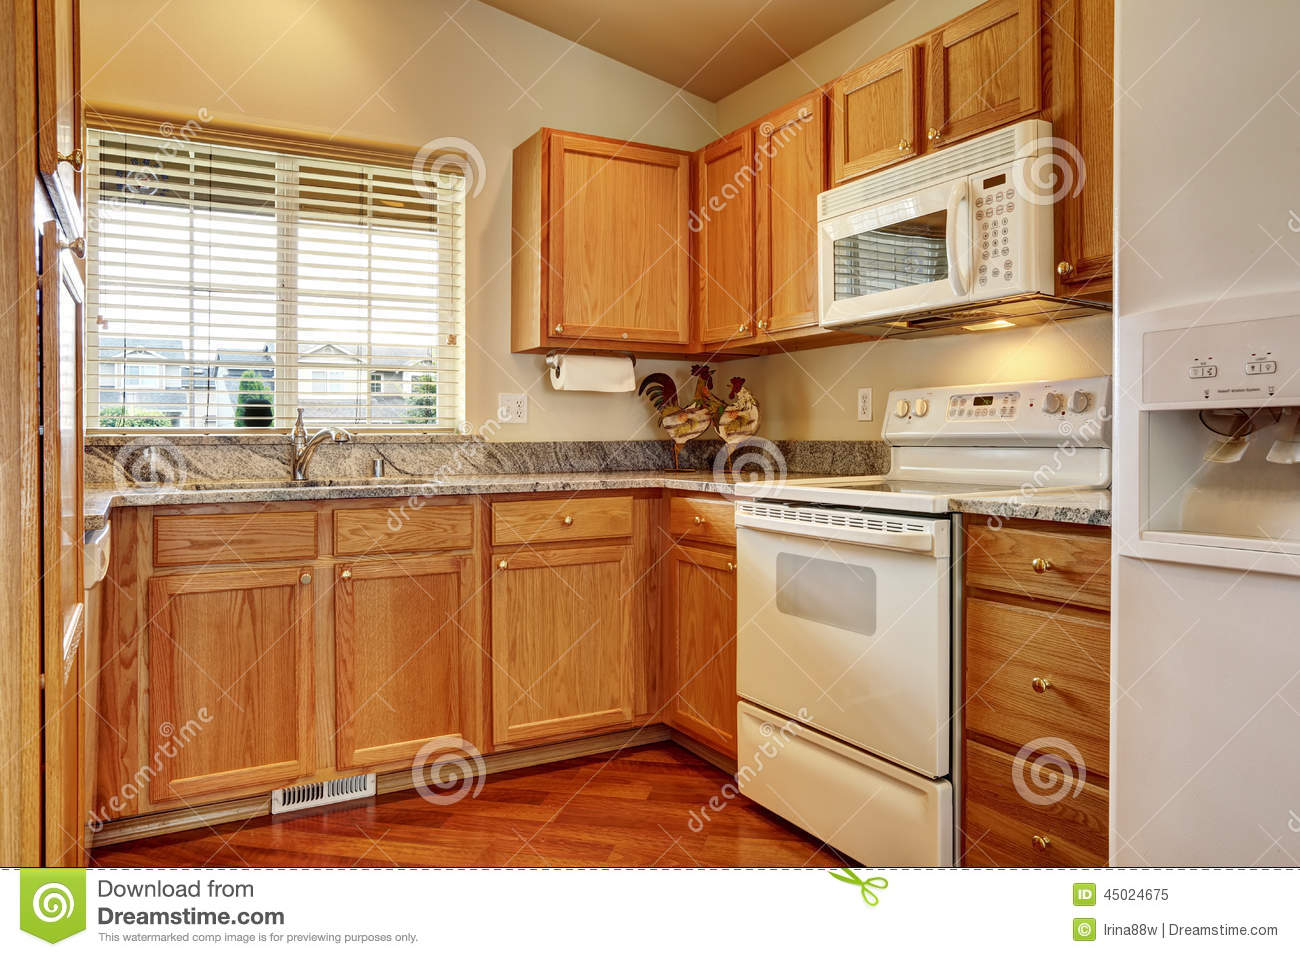 Small Kitchen Area Small Kitchen Area With White Appliances Stock Image